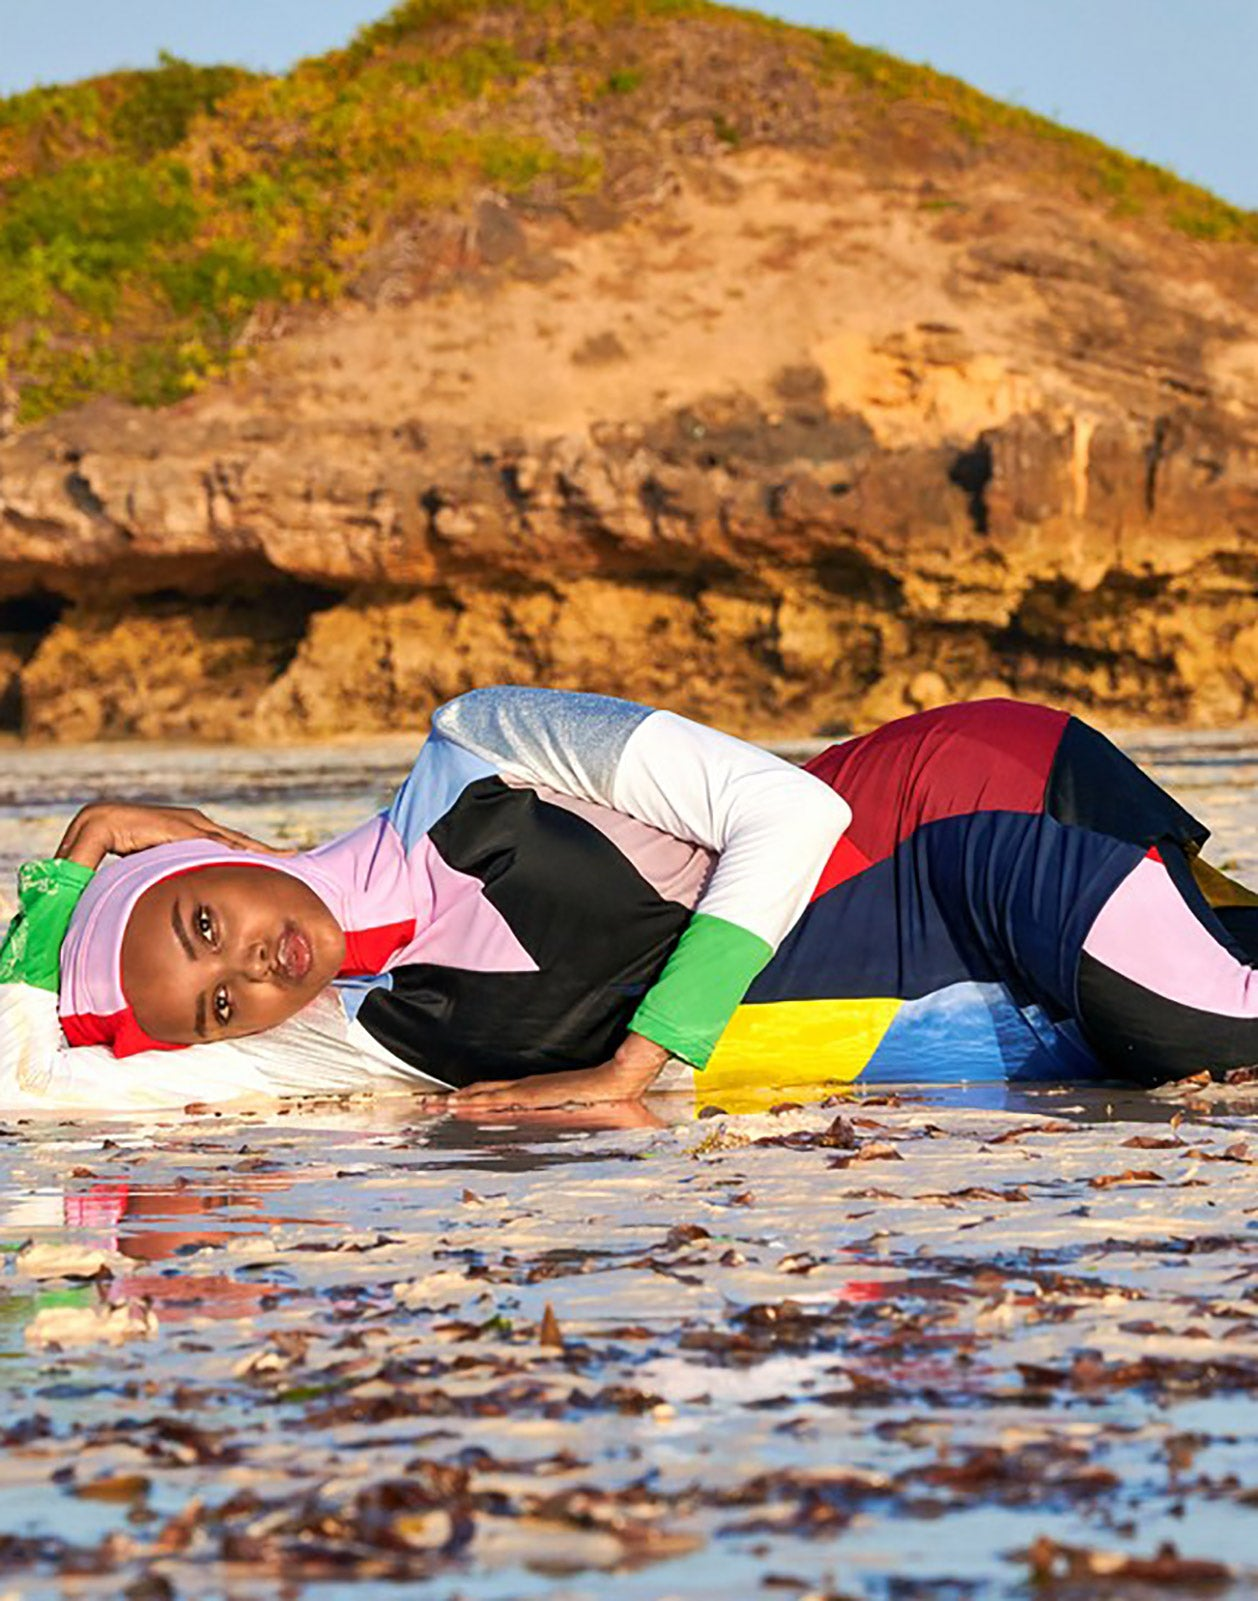 Prism Colorblock Burkini in Sports Illustrated